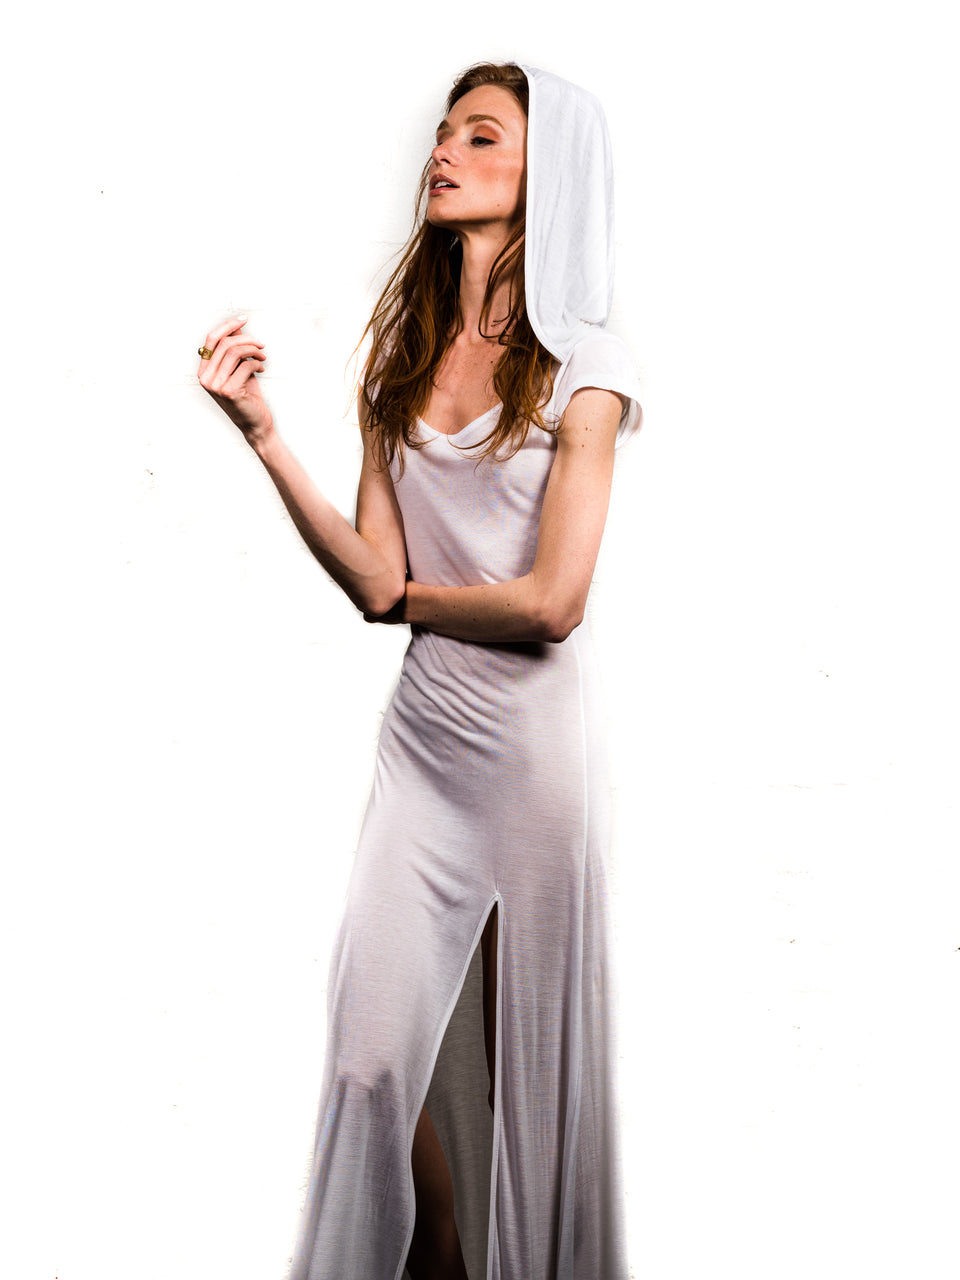 Short Sleeve Scoop Neck Dress with Hood - Illuminated White